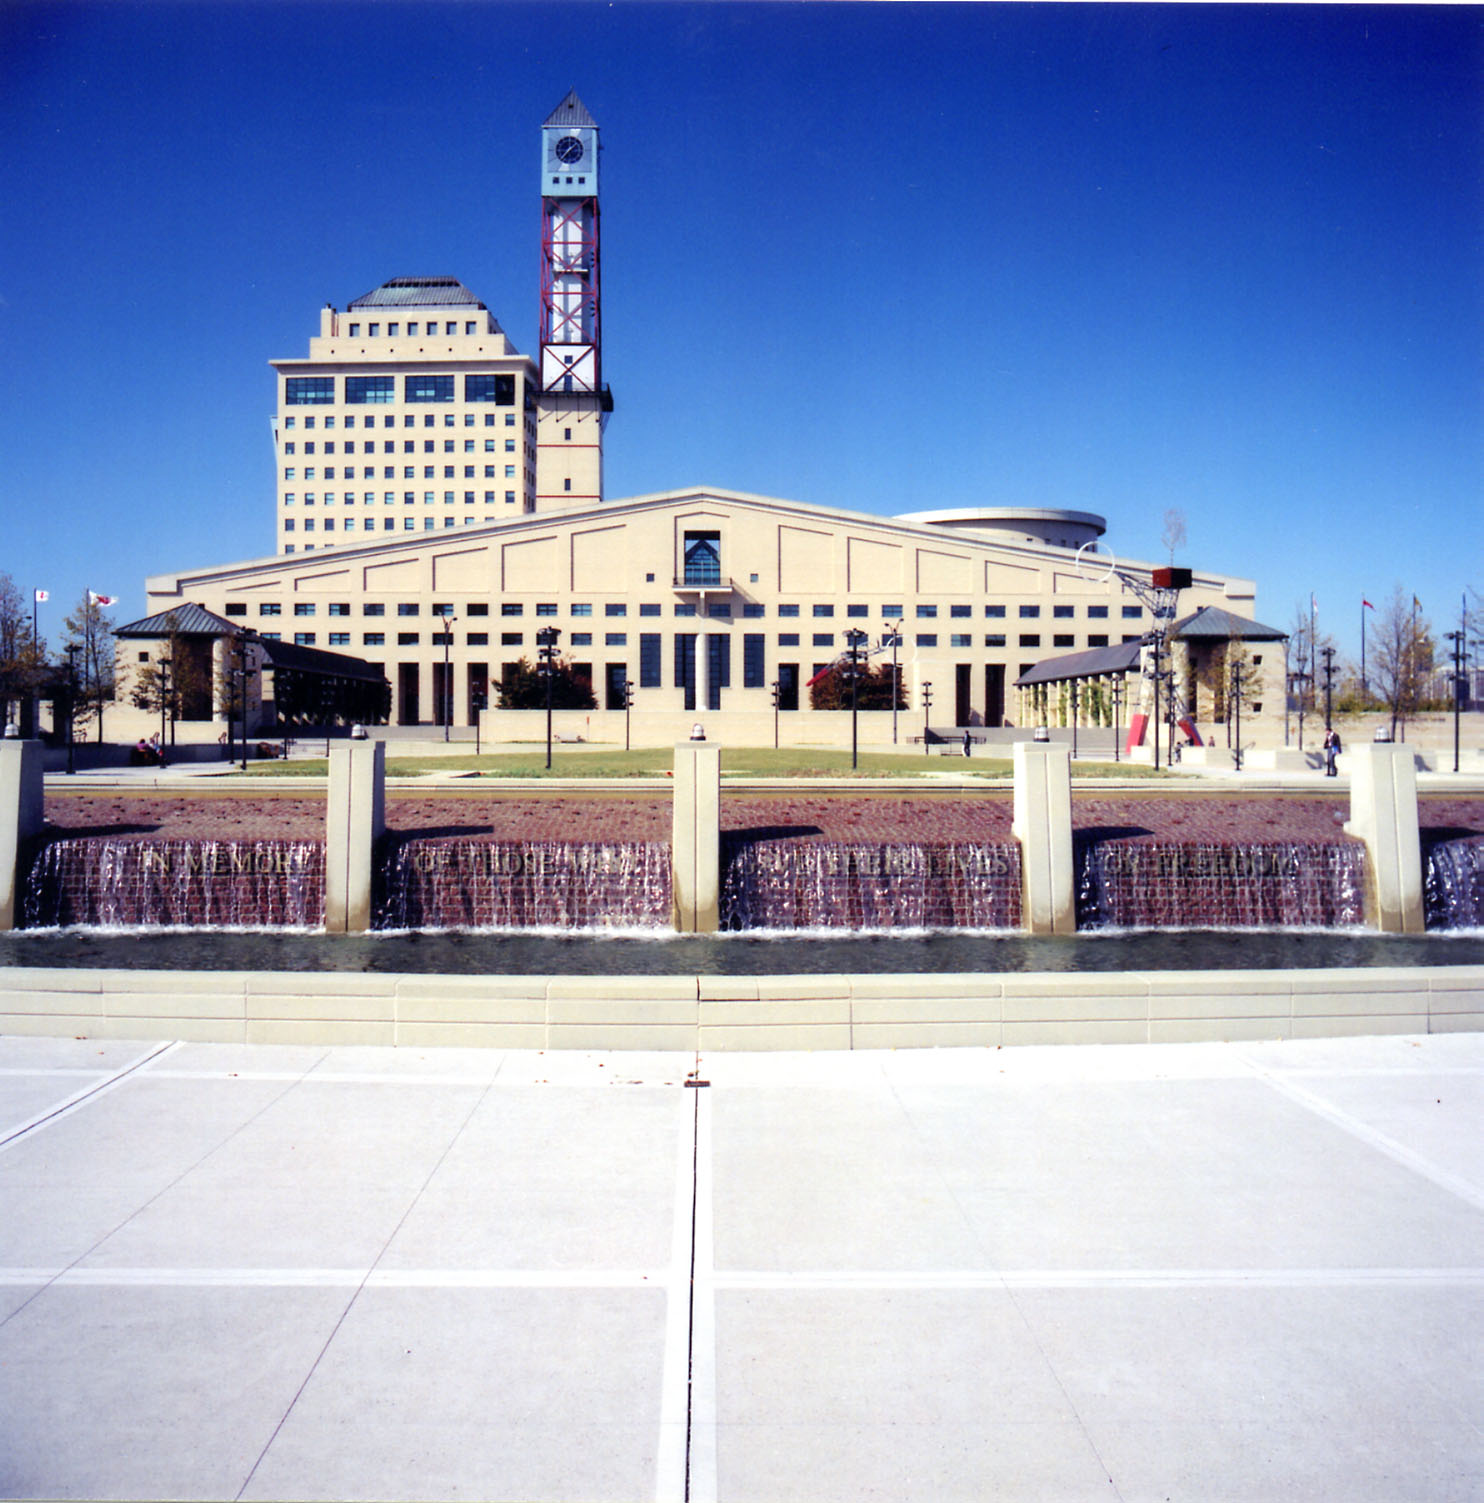 Mississauga Civic Centre and Peace Memorial